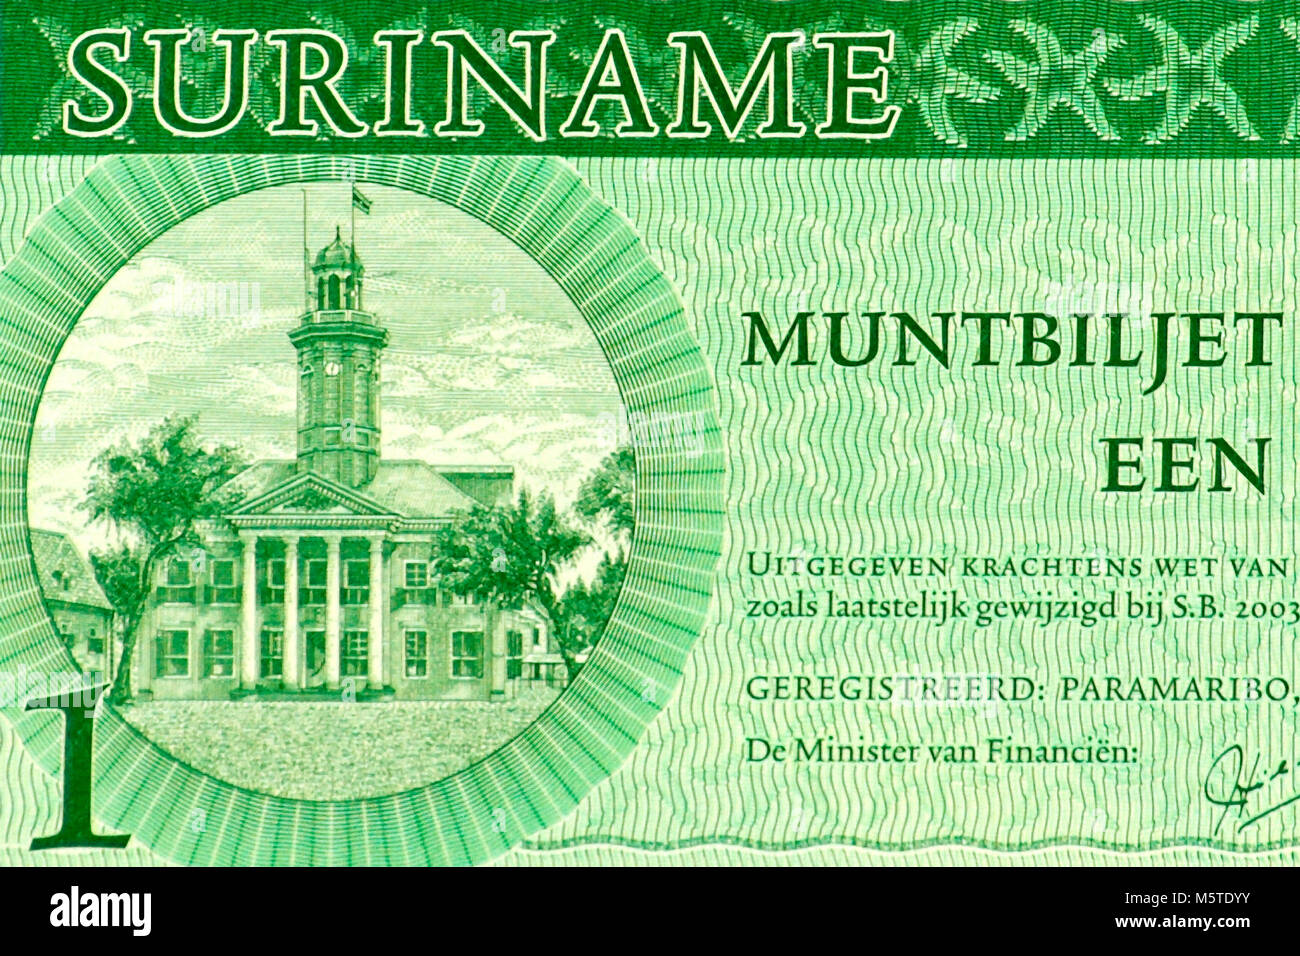 Suriname One 1 Dollar Bank Note - Stock Image